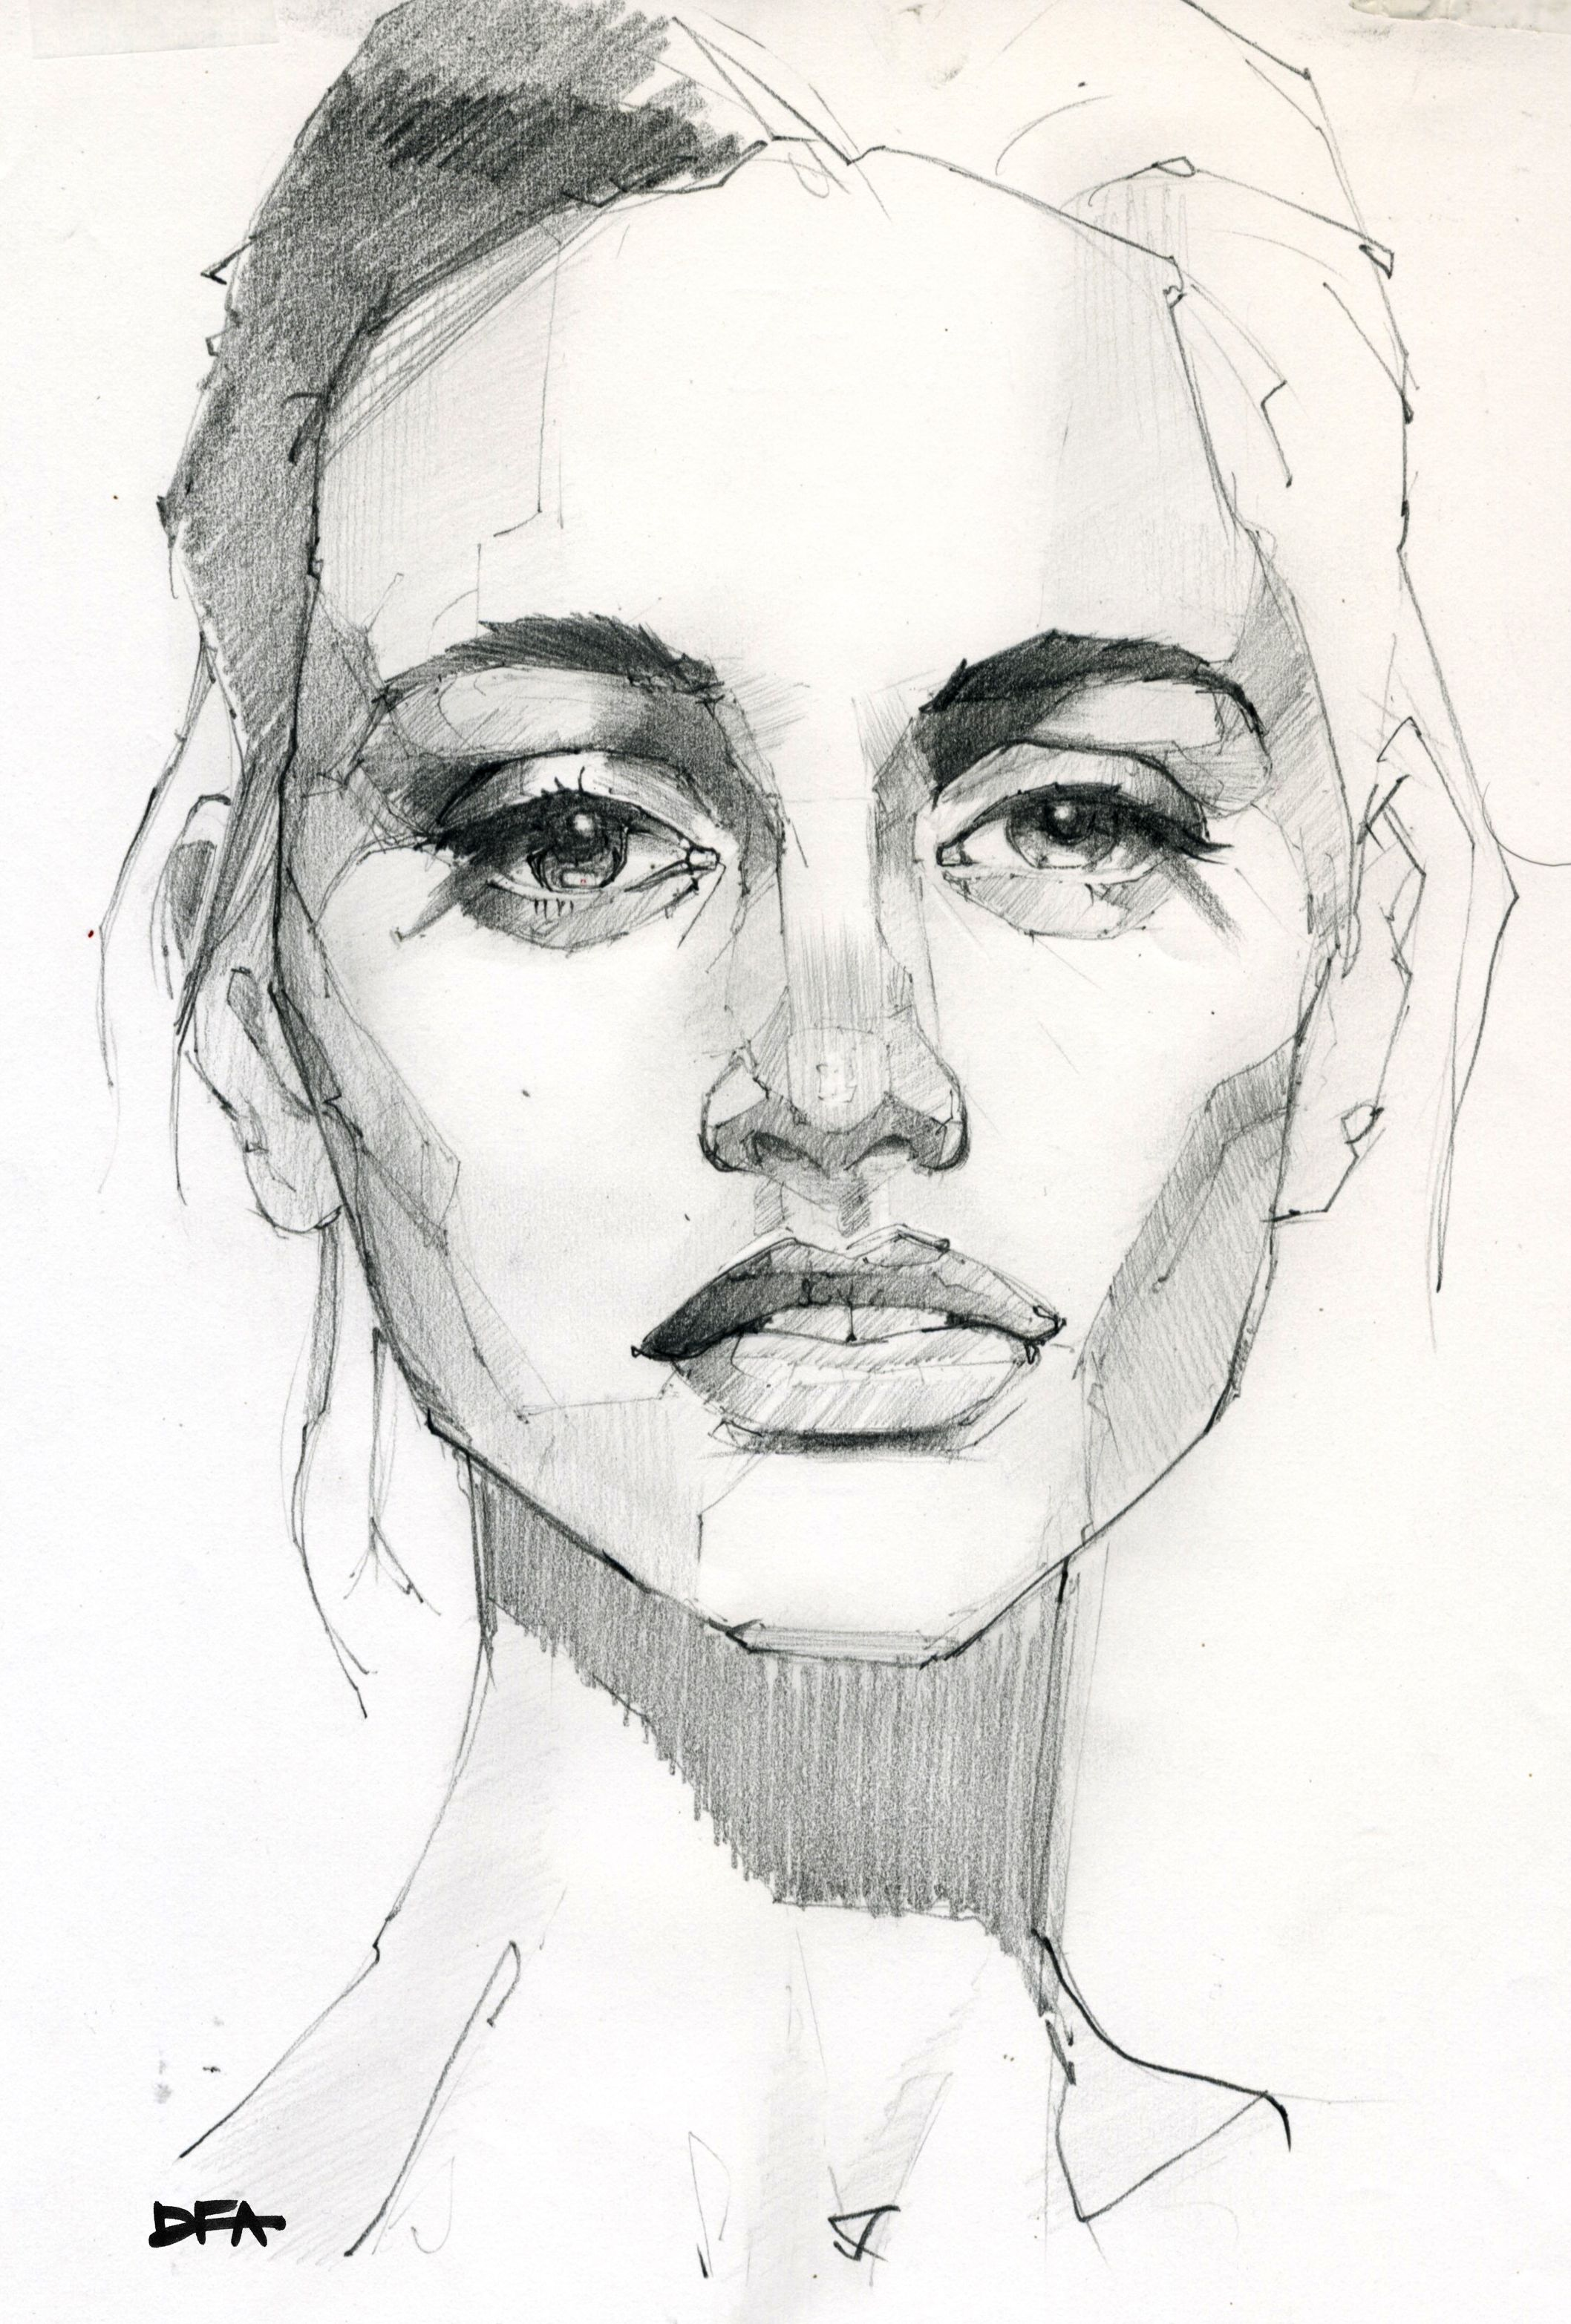 Graphite portrait drawing of beautiful woman pencil art pencil sketching pencil drawings art